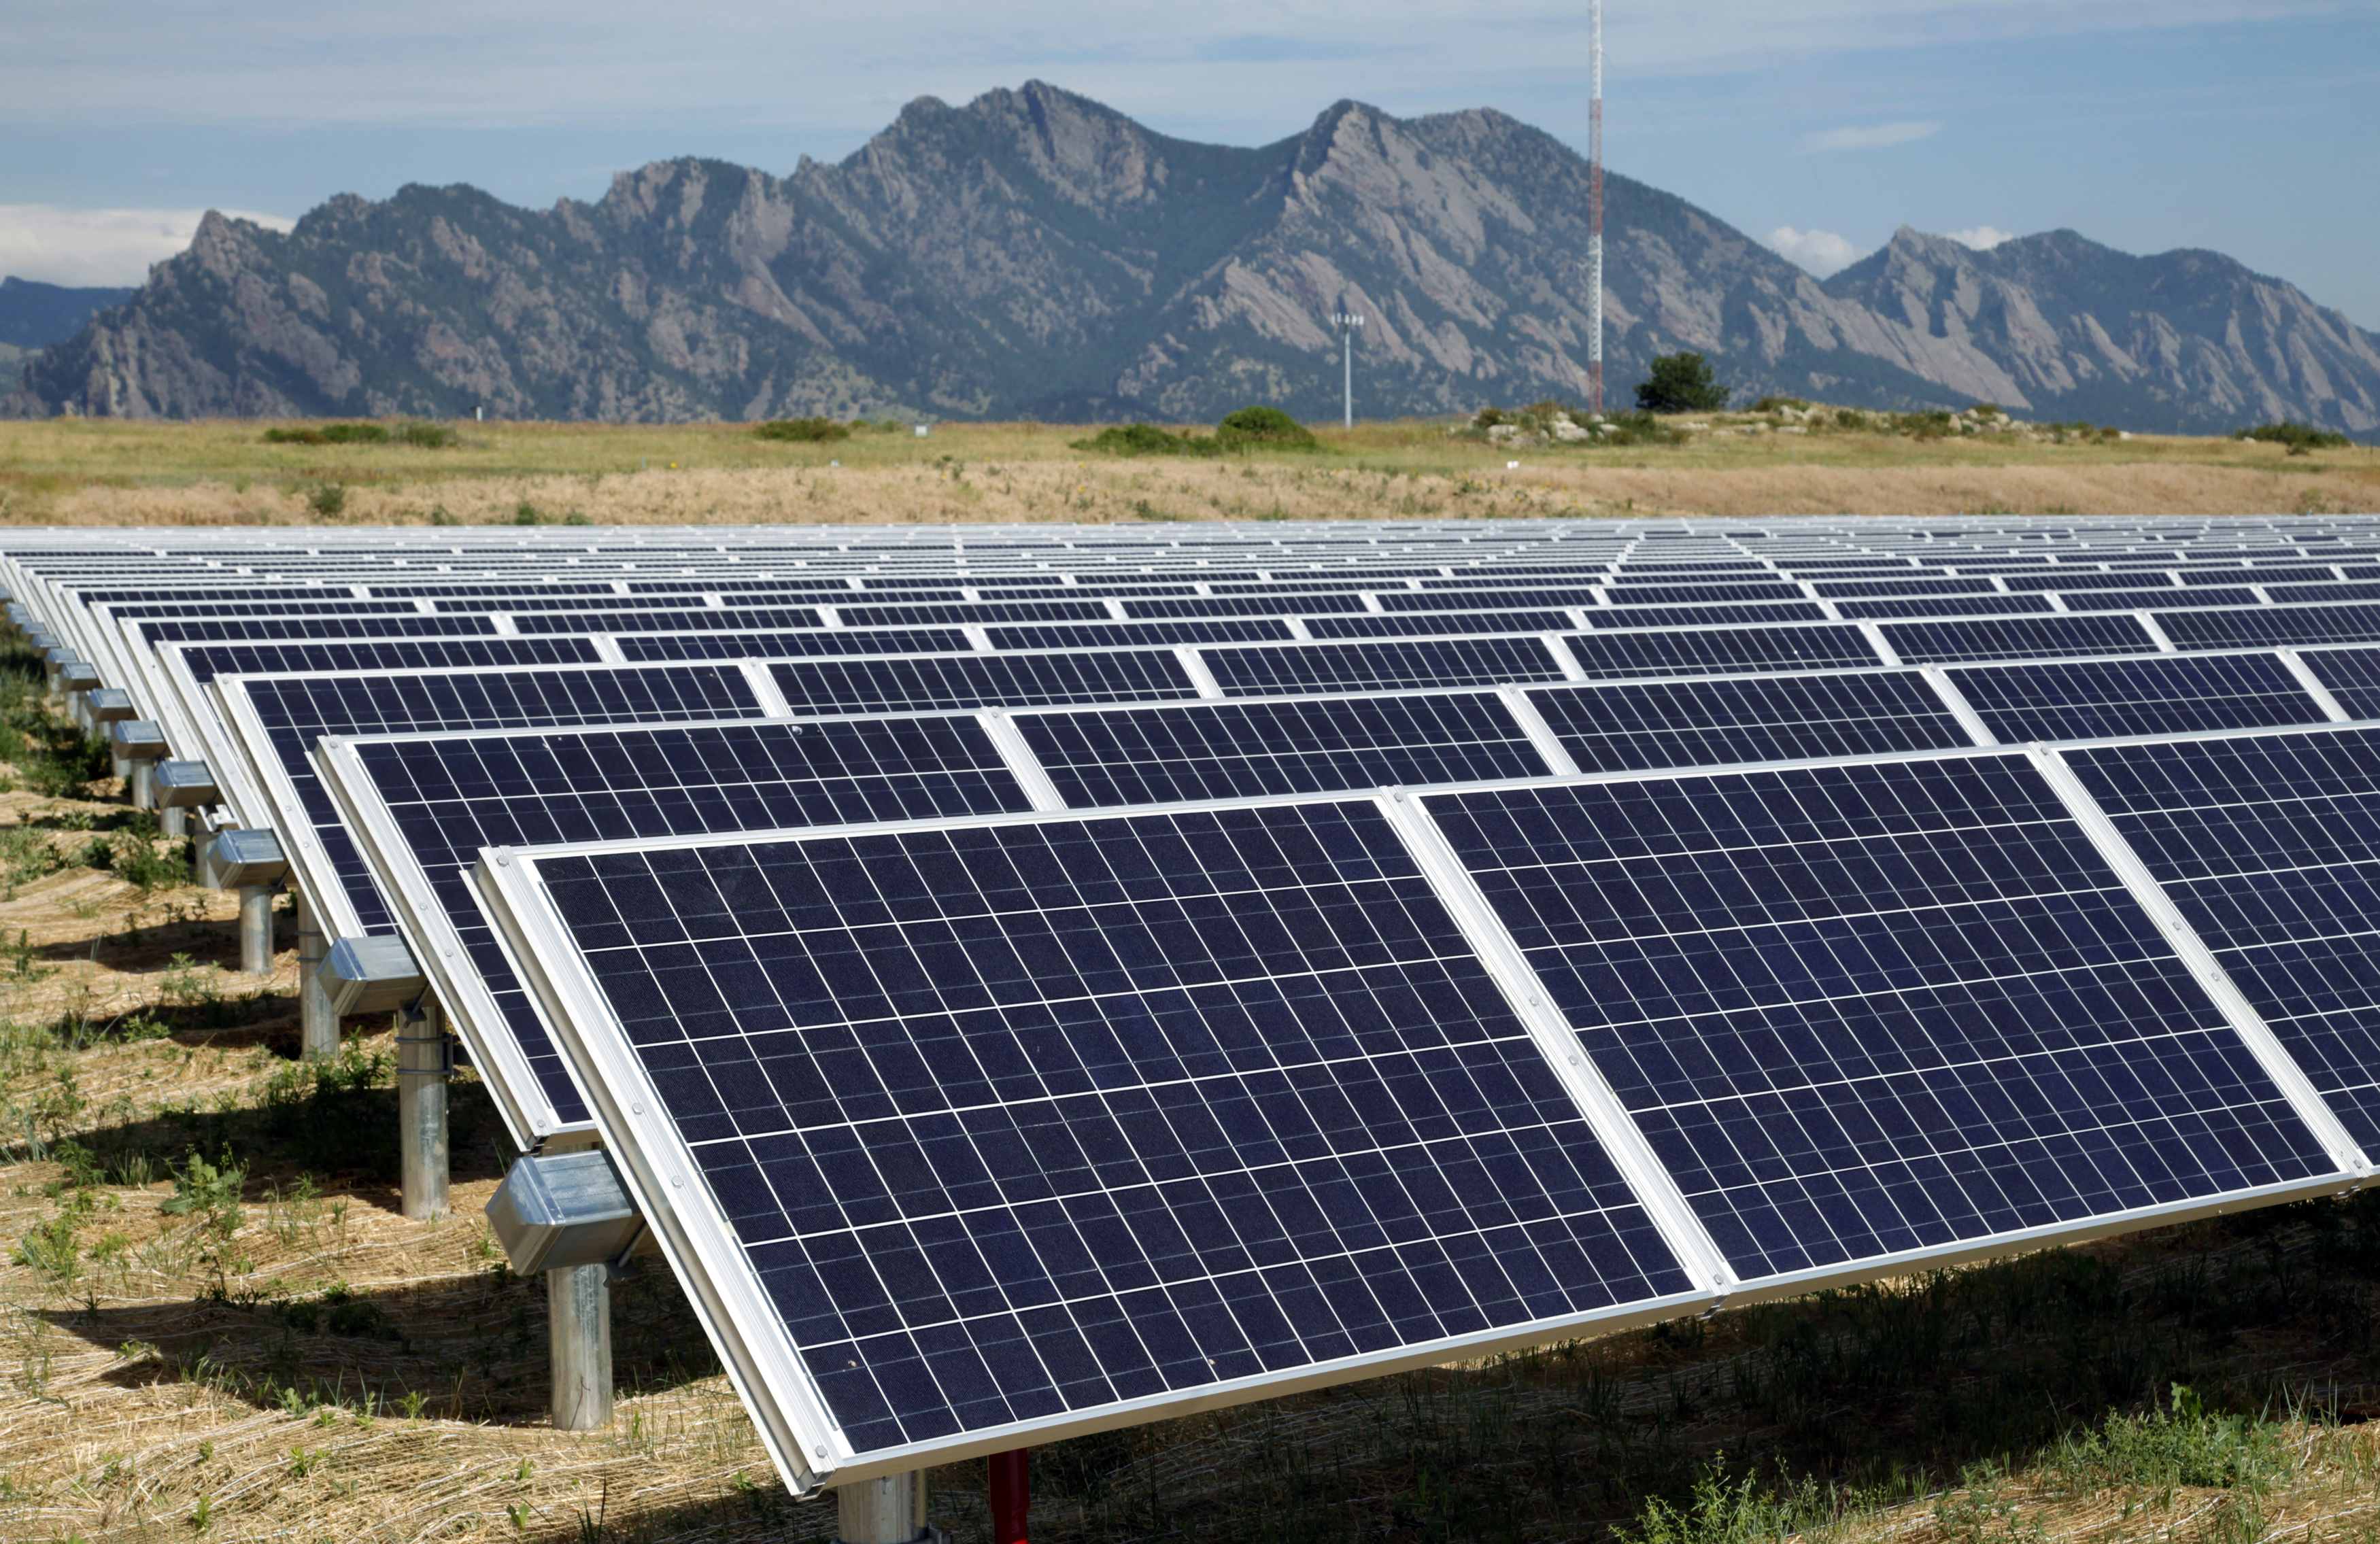 U.S. solar market growth slows this year as projects pushed back